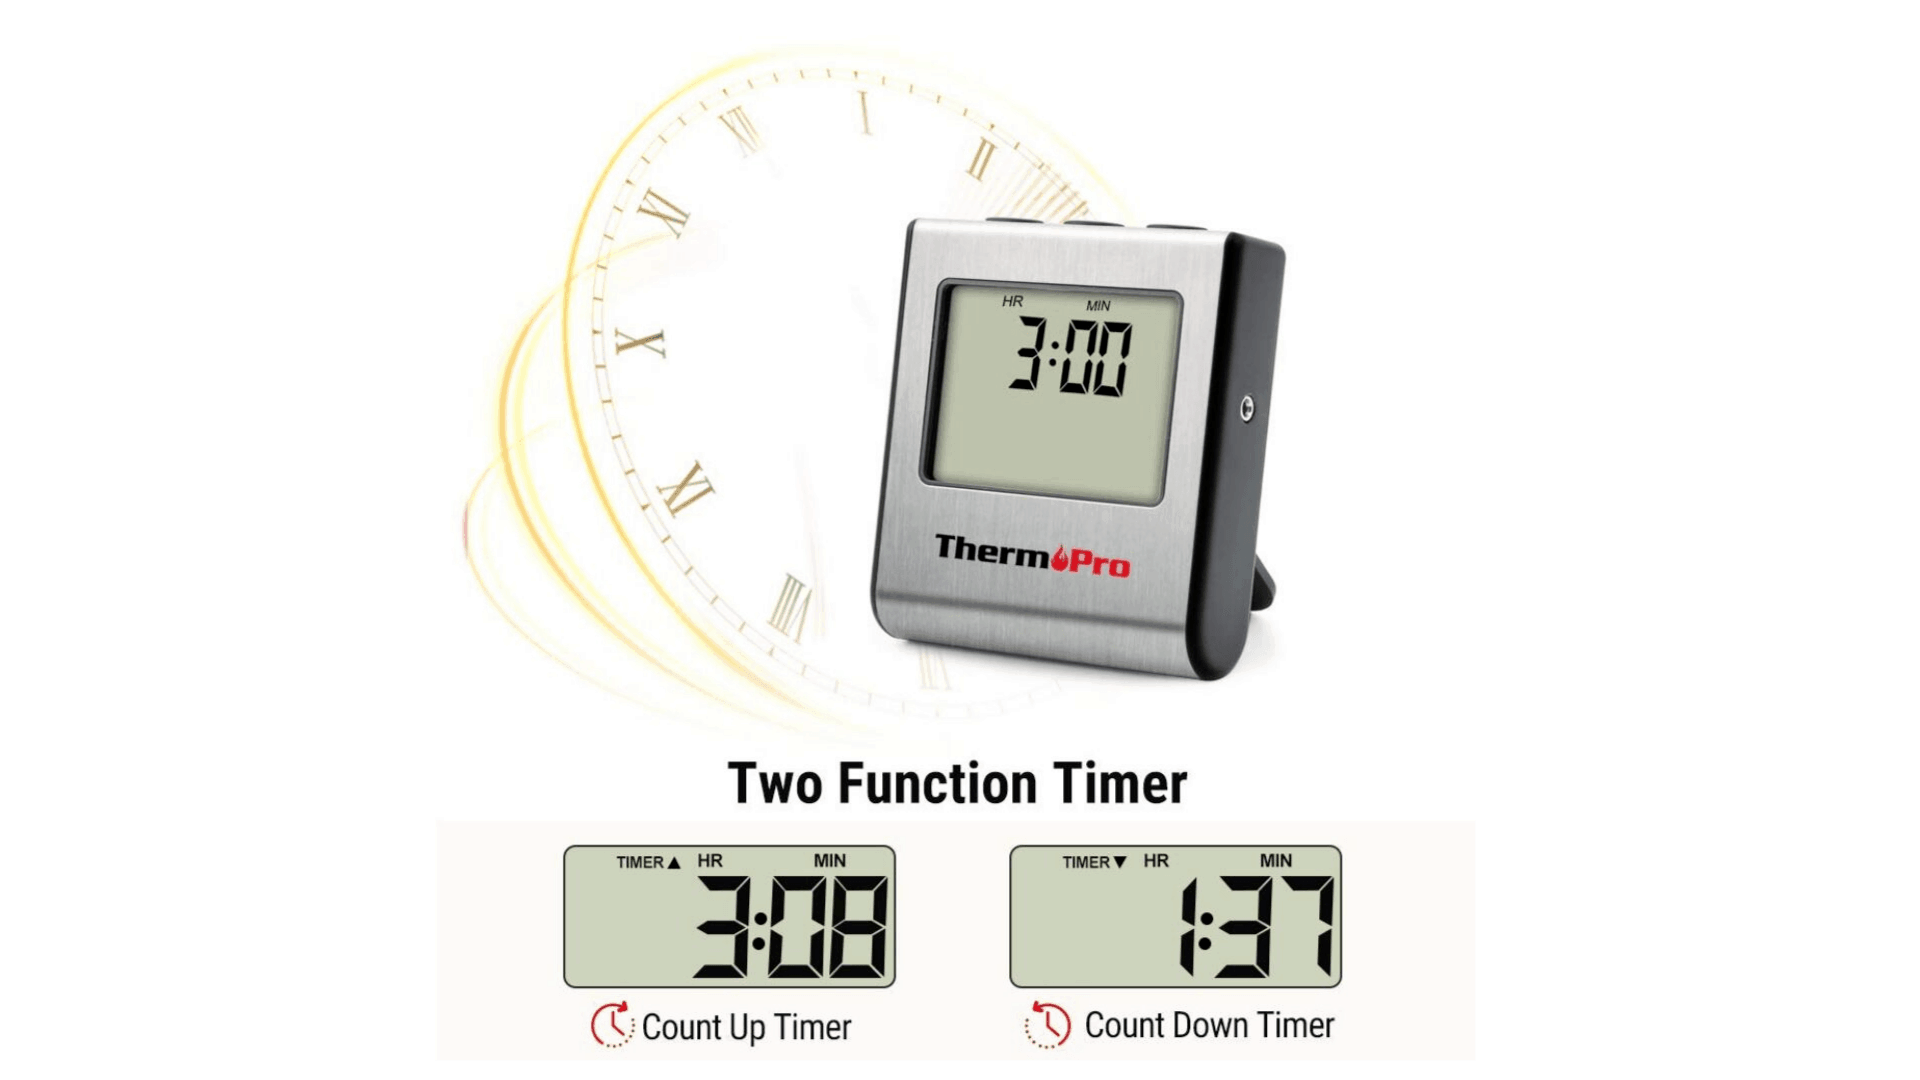 Product image of ThermoPro TP-16 Large LCD Digital Meat Thermometer two function timer